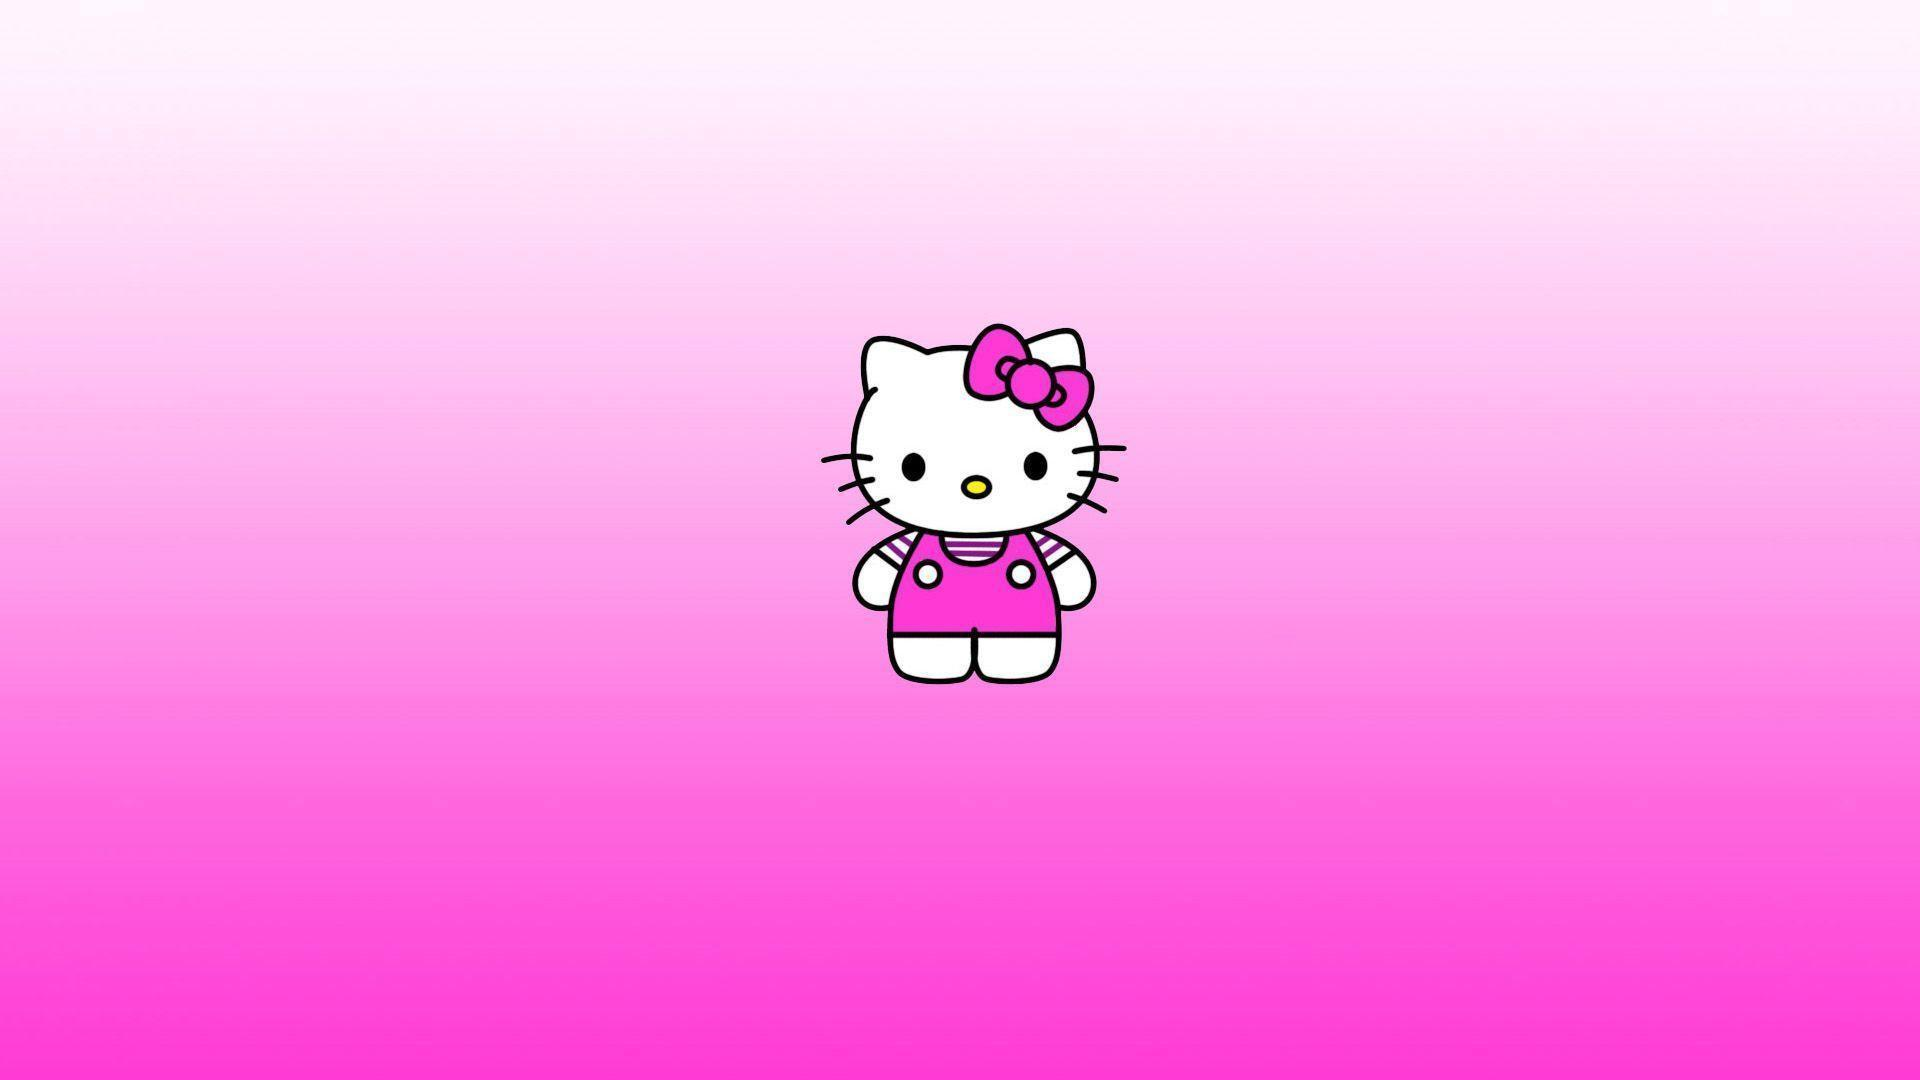 Cute Wallpapers Of Hello Kitty - Wallpaper Cave